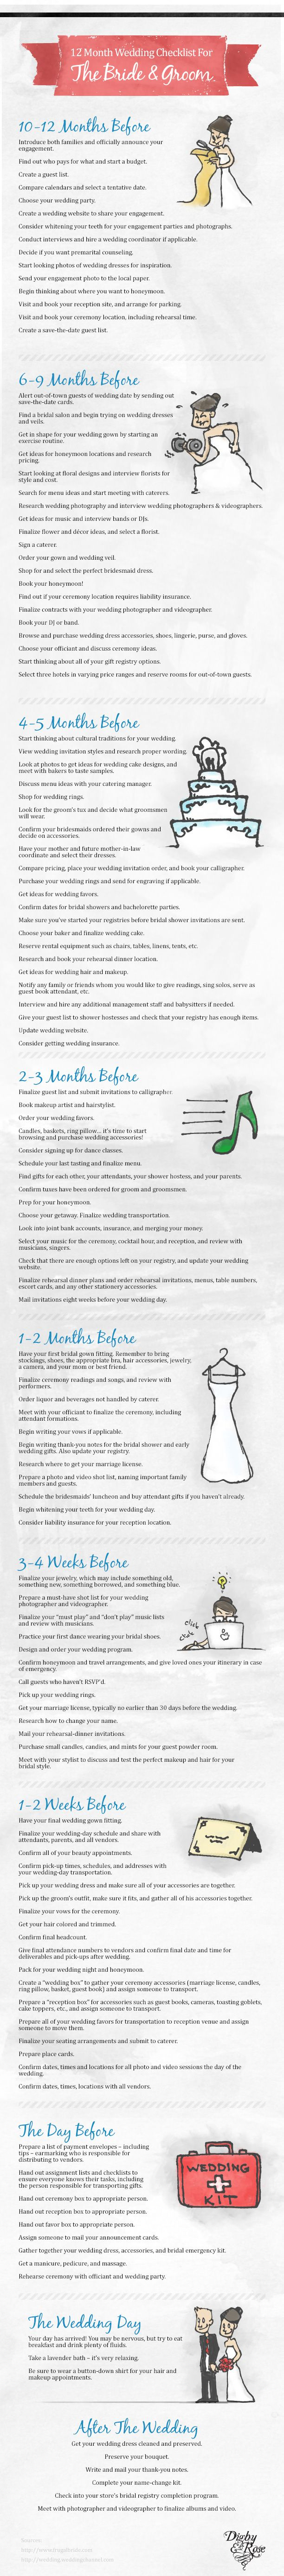 12 Month Wedding Checklist For The Bride and Groom.